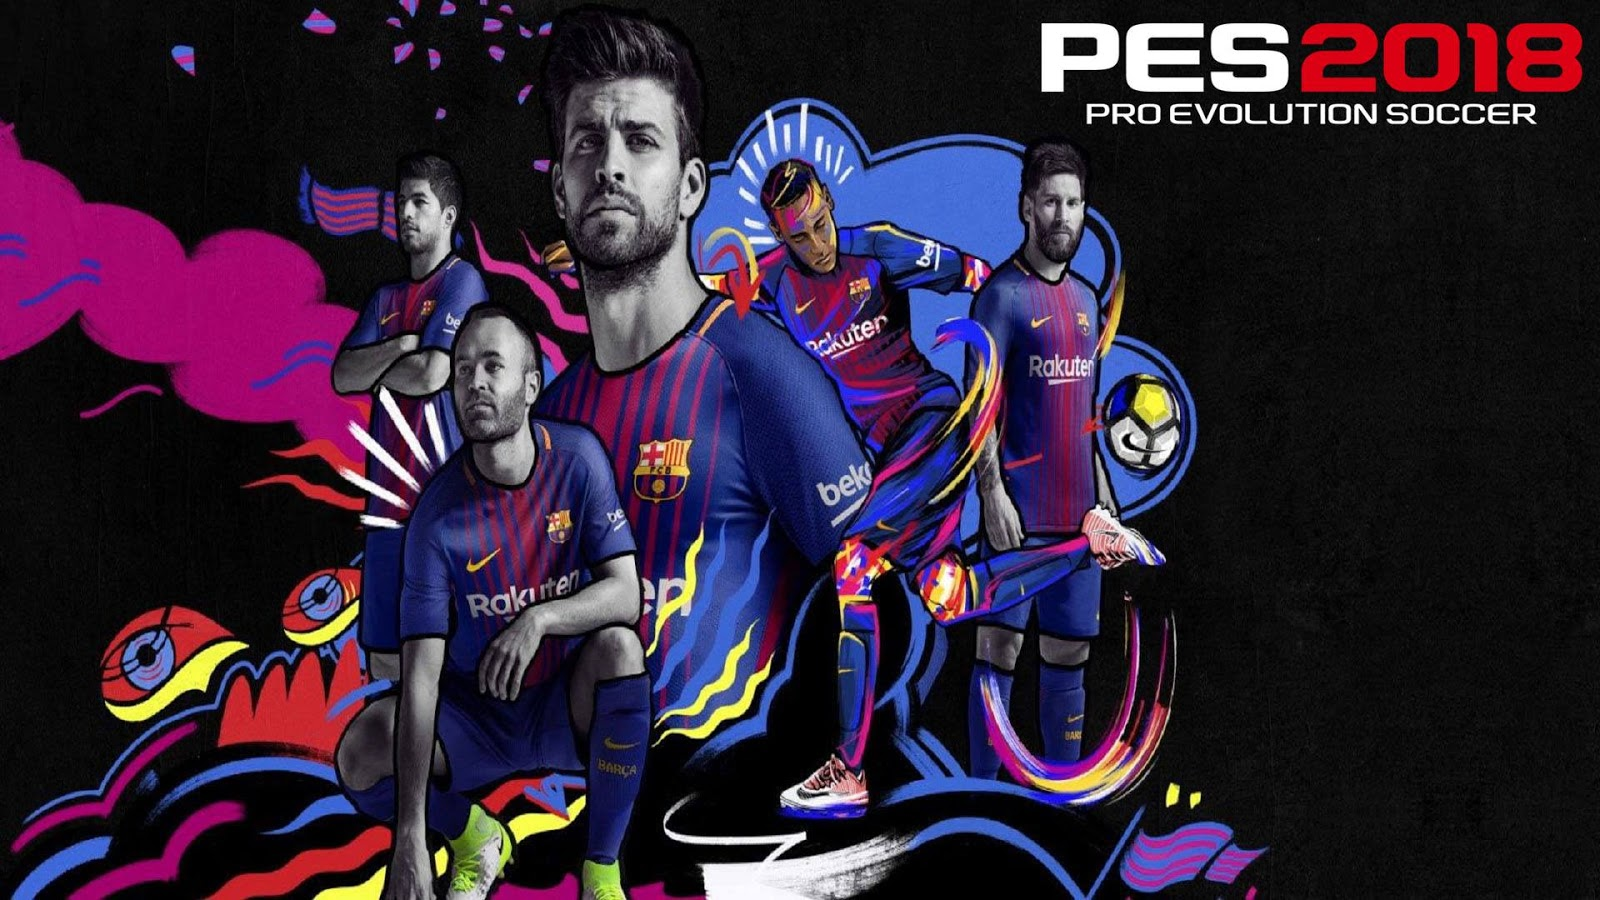 Pro Evolution Soccer Pes 2018 Wallpapers Read Games HD Wallpapers Download Free Images Wallpaper [1000image.com]